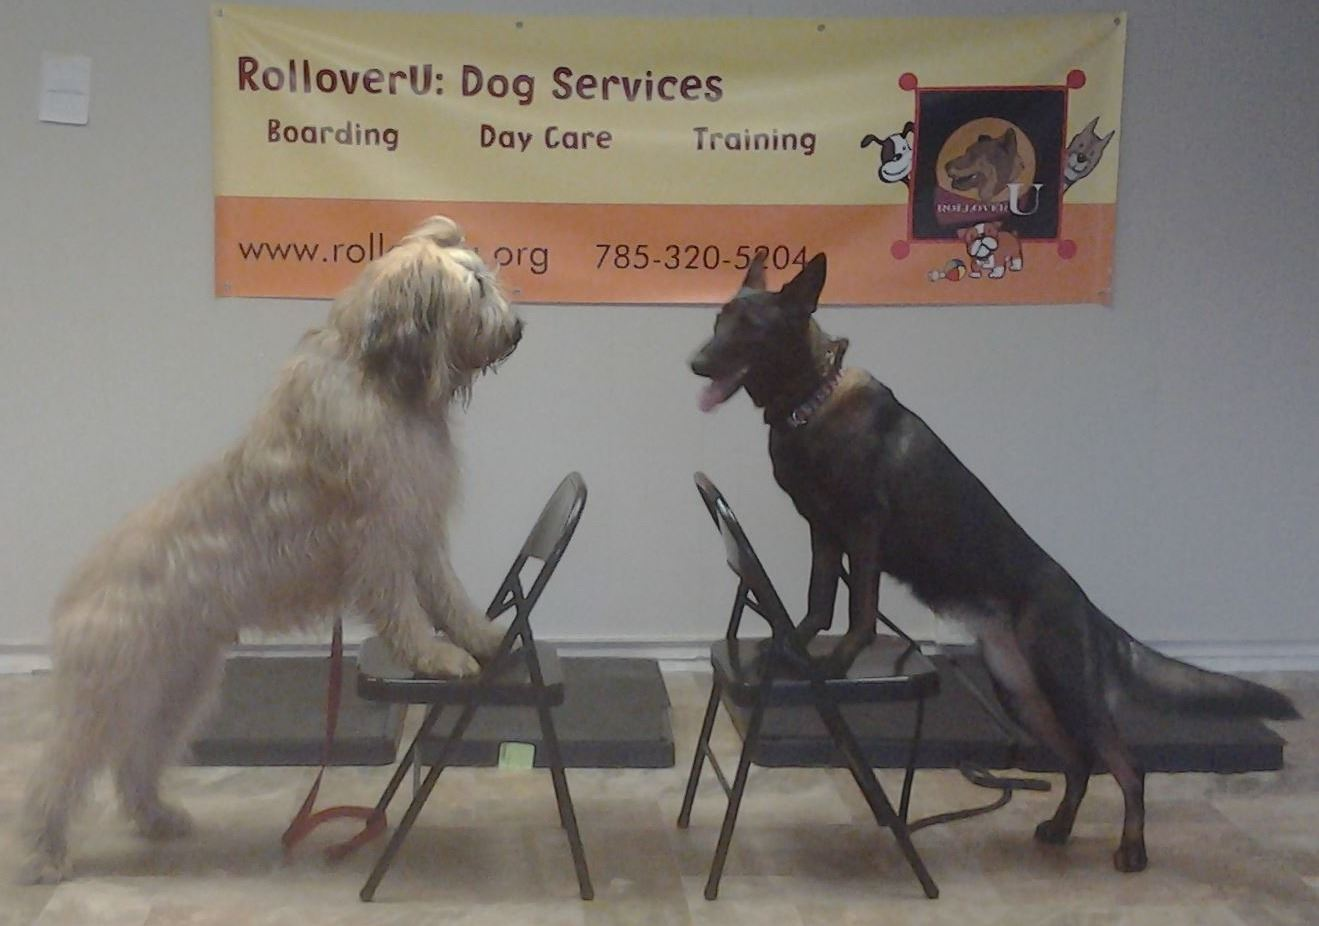 Two dogs on chairs